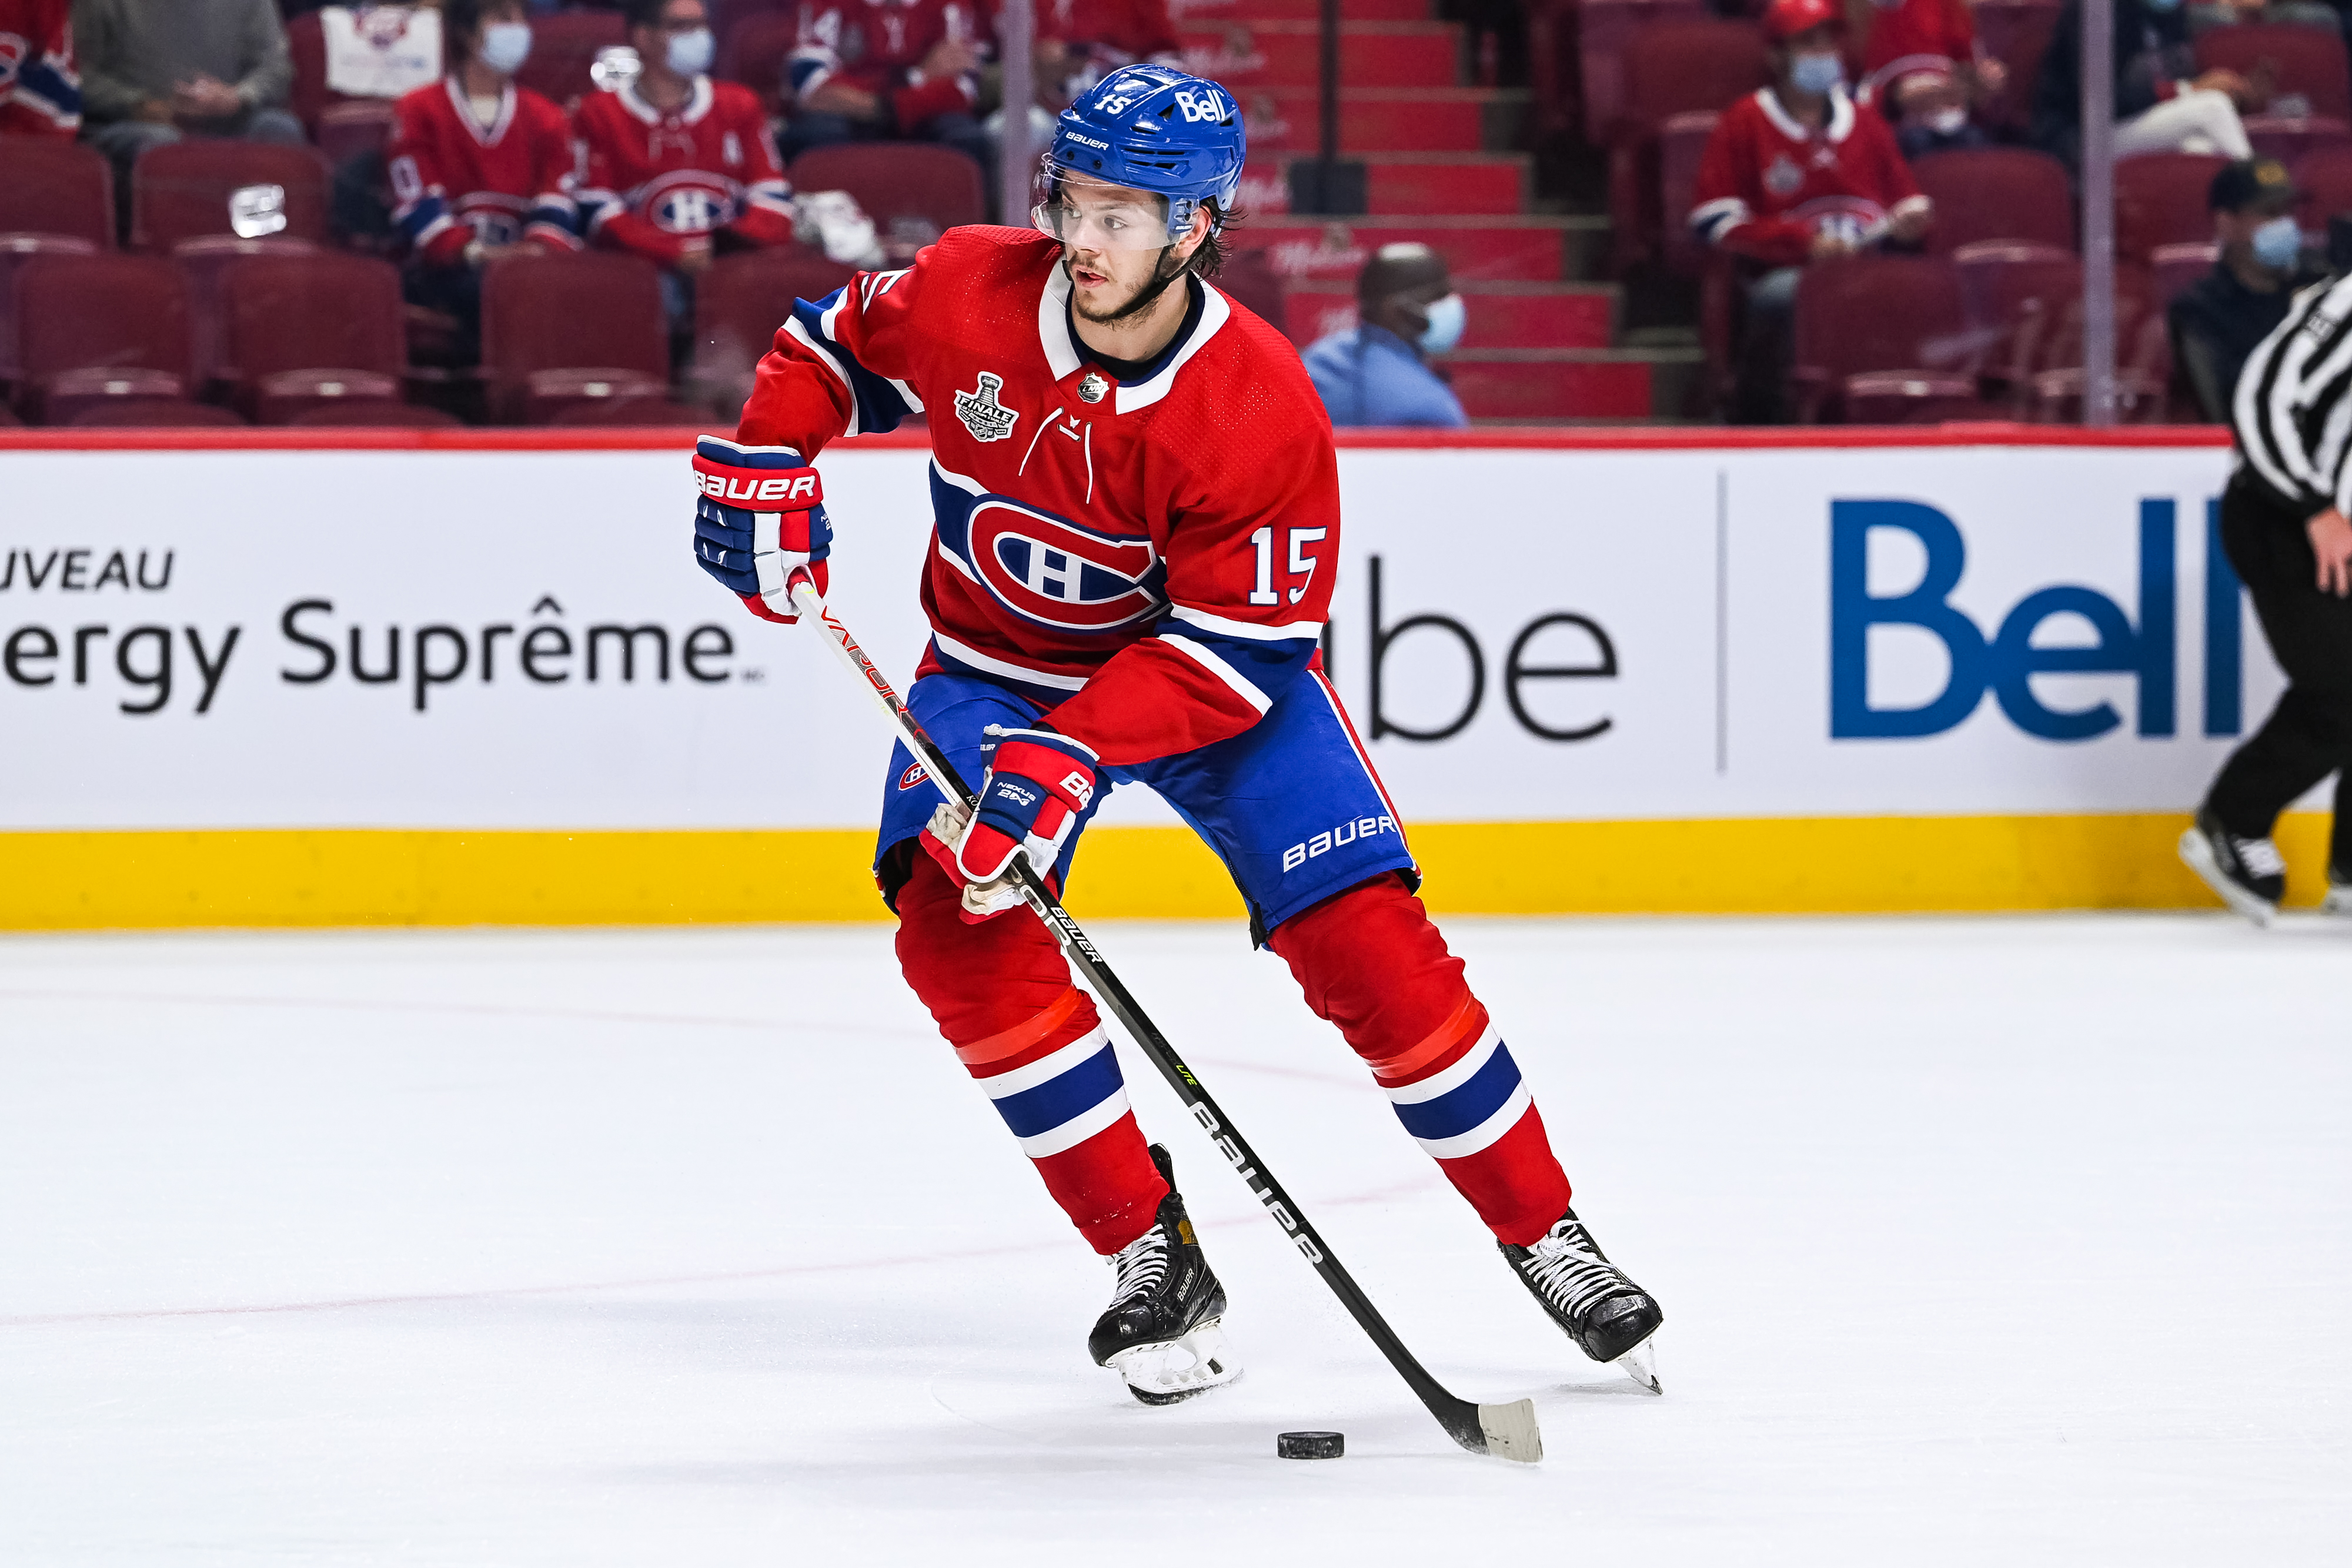 NHL: JUL 02 Stanley Cup Playoffs Final - Lightning at Canadiens